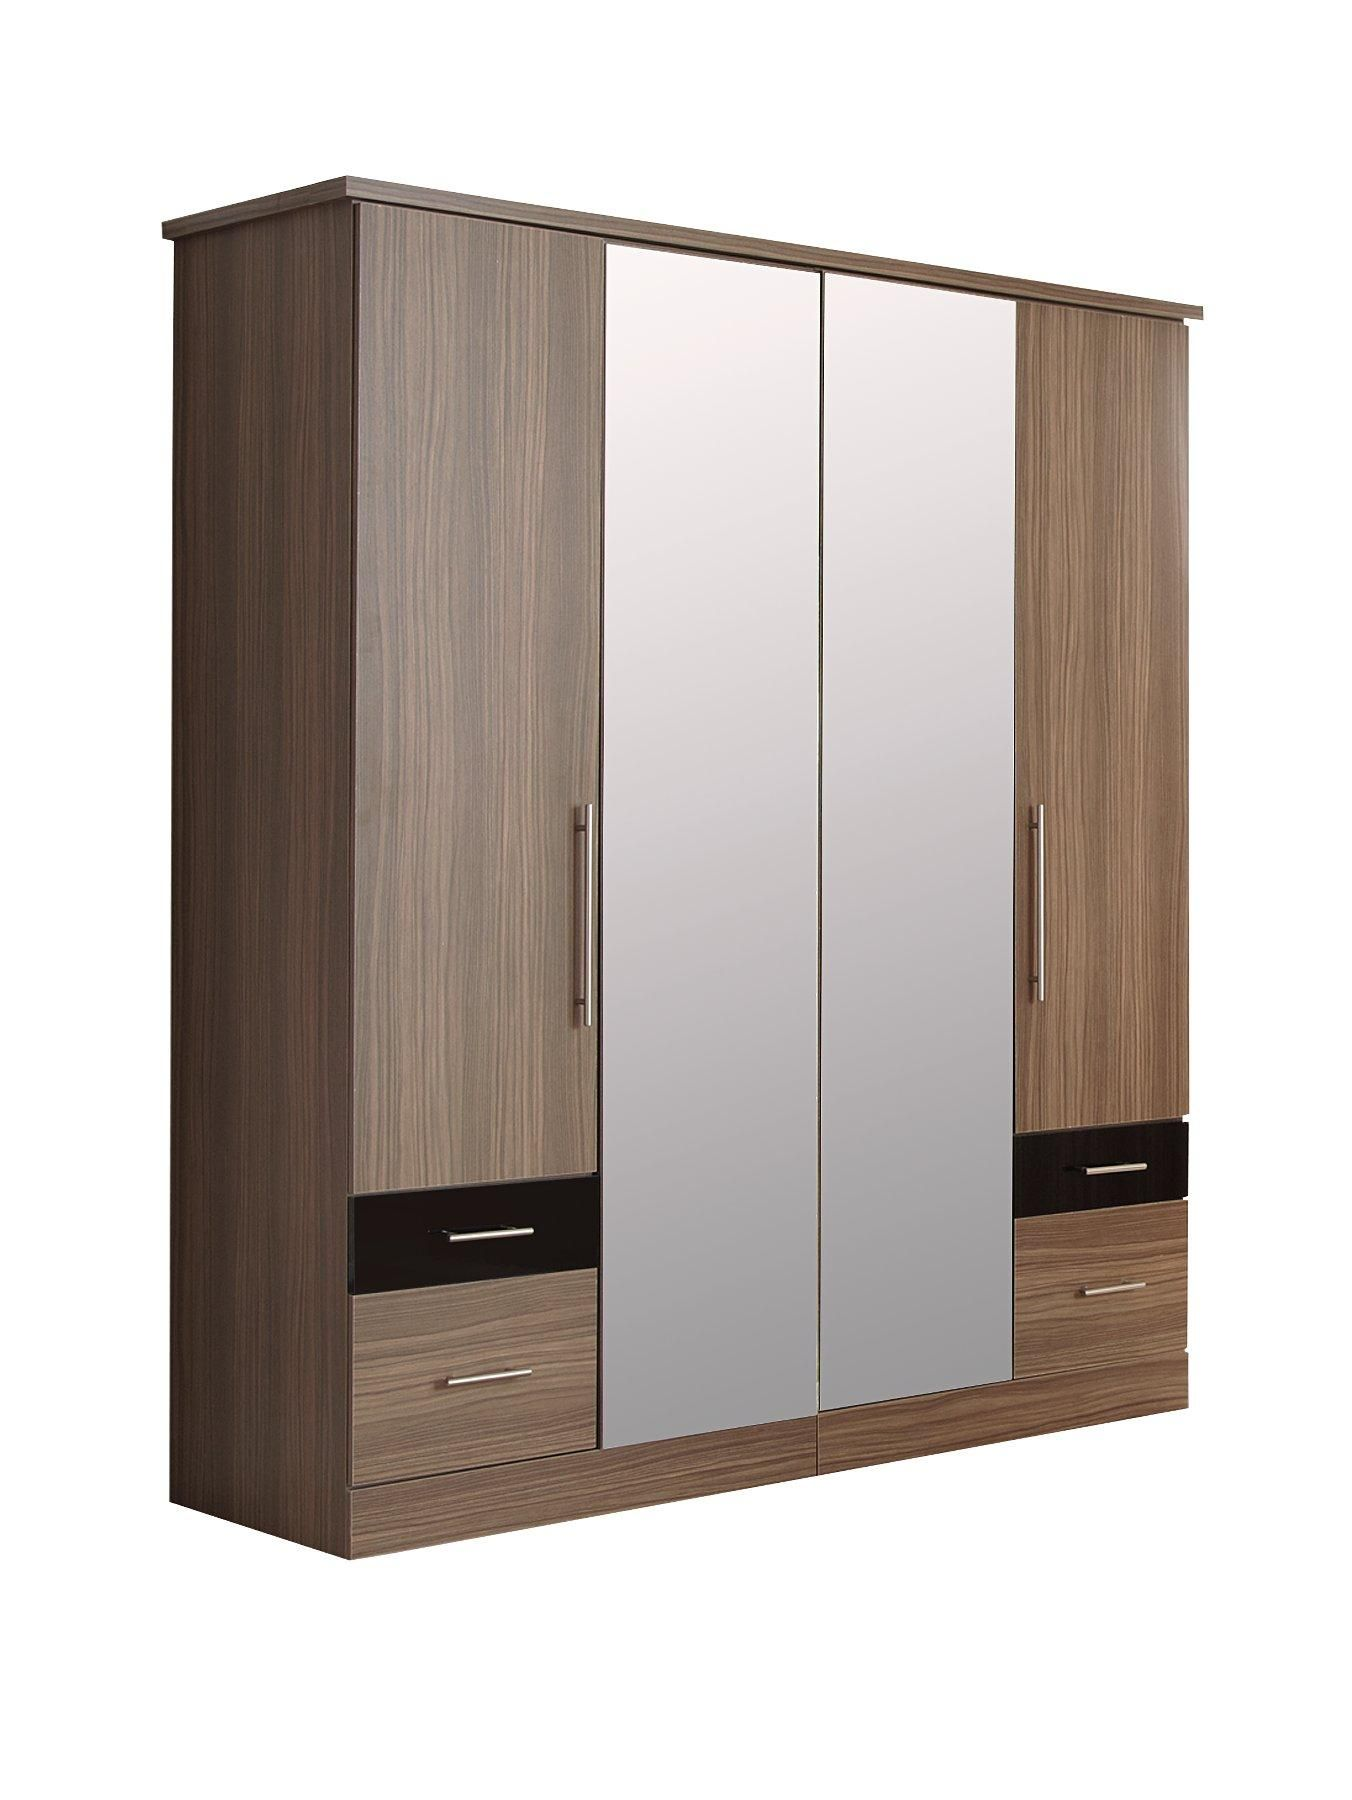 Consort Eclipse 4 door 4 drawer Wardrobe with Mirror Spacious and